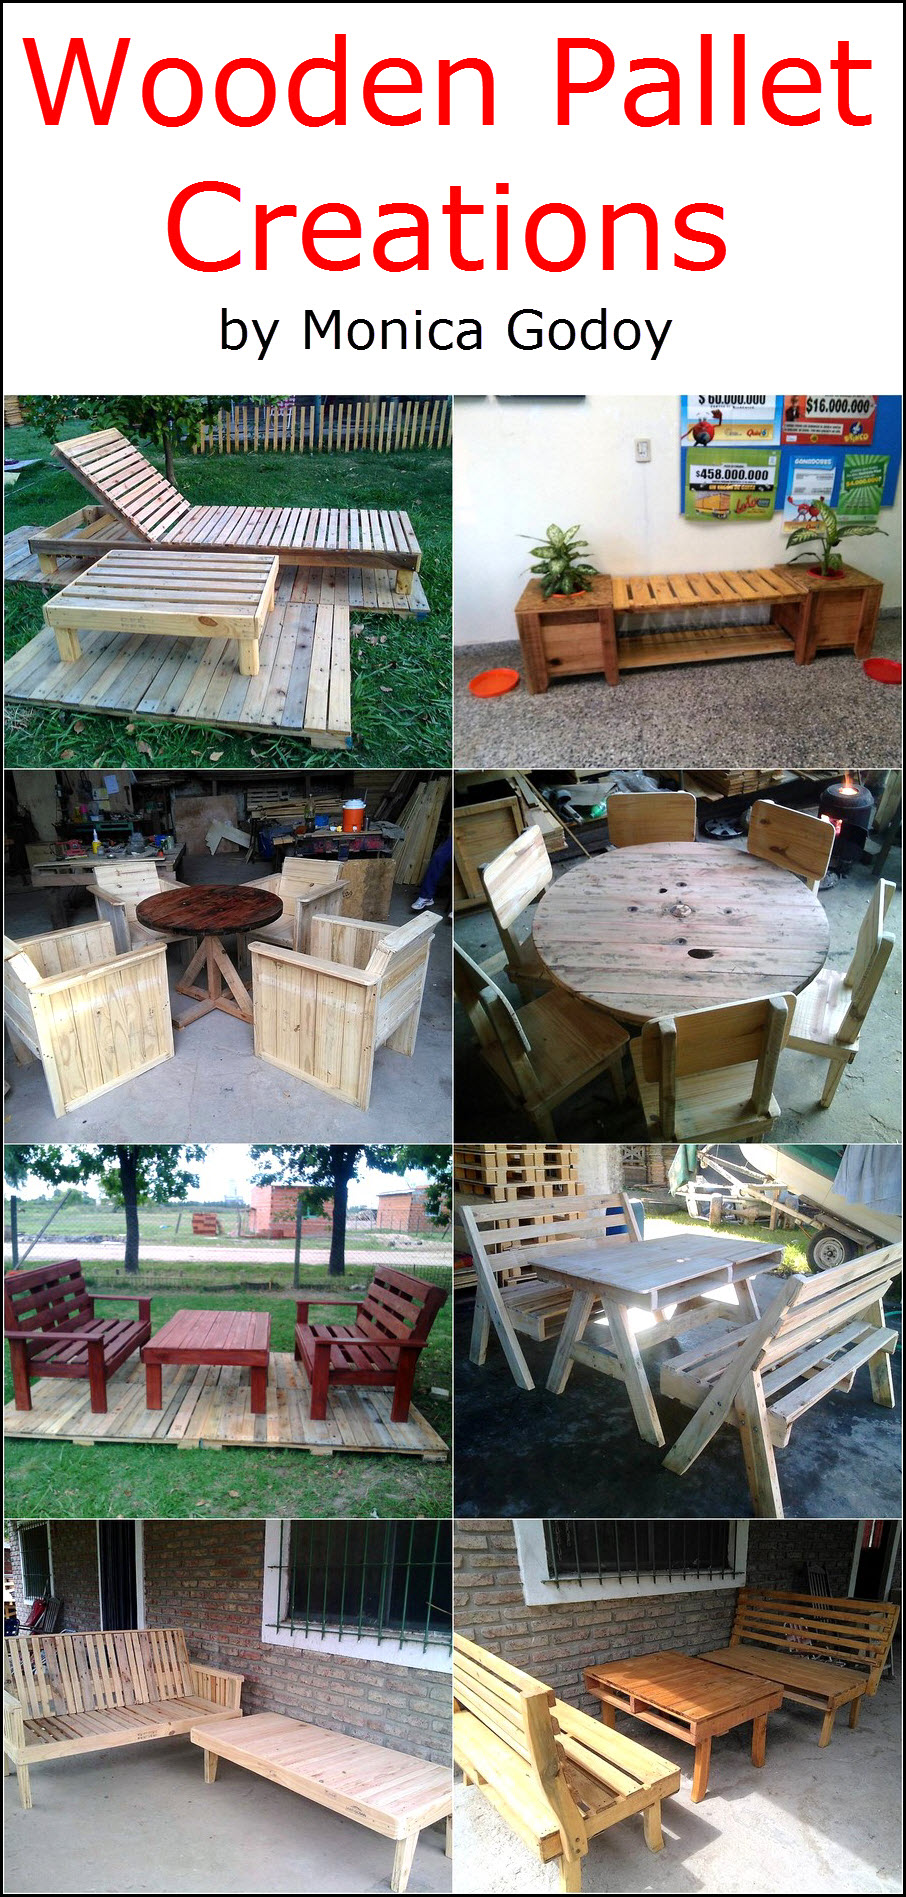 wooden-pallet-creations-by-monica-godoy